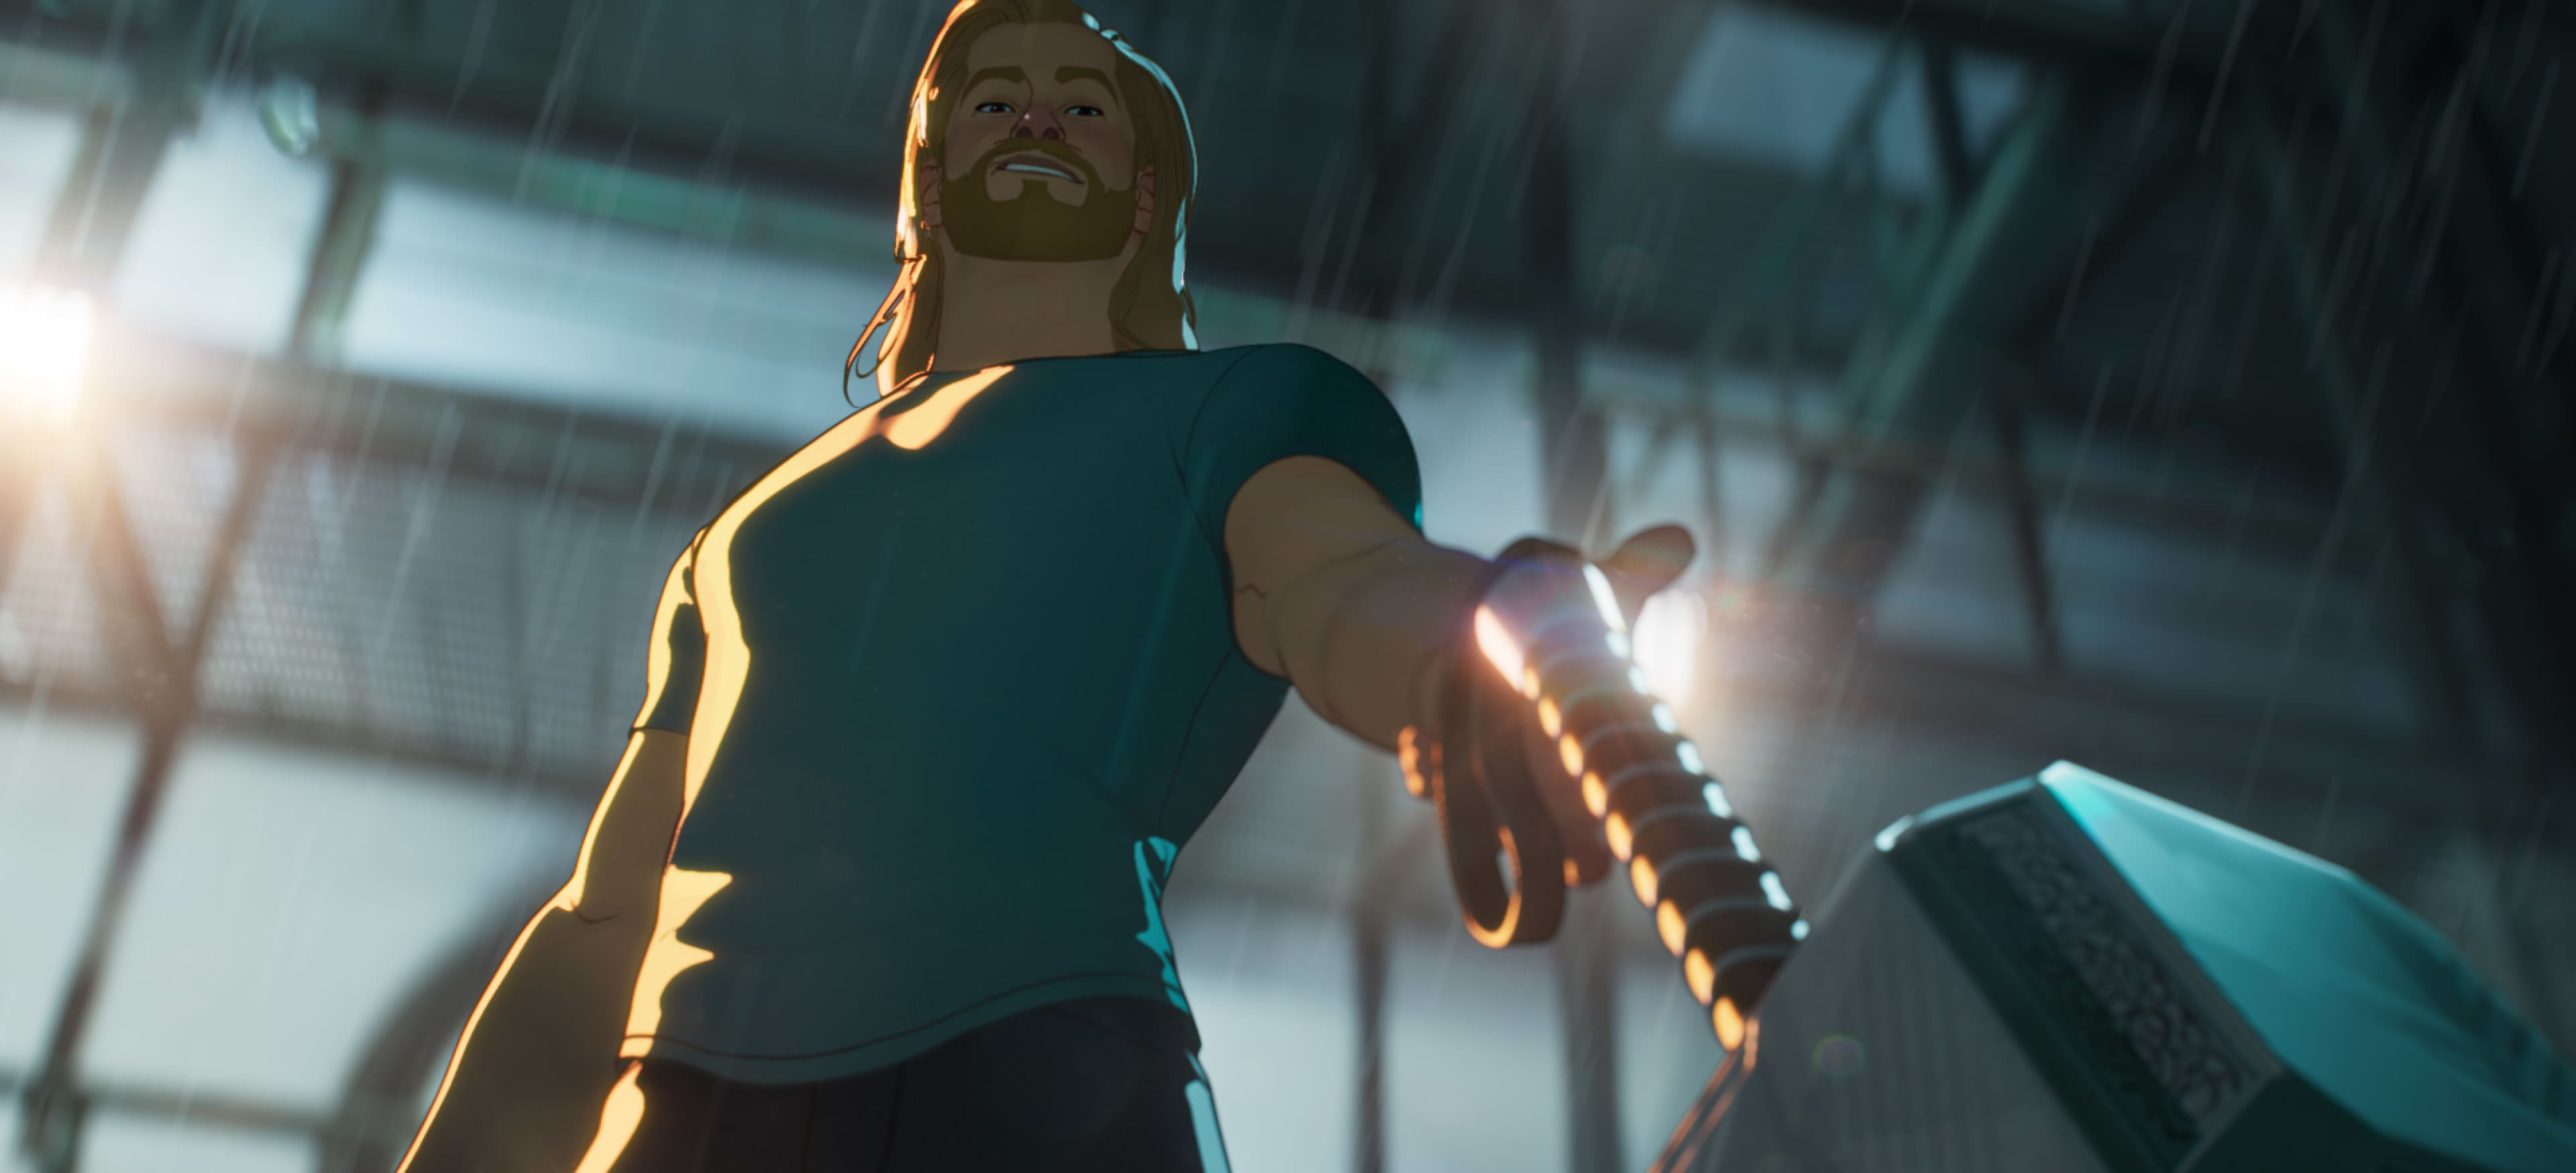 Thor in Marvel Studios' WHAT IF…? exclusively on Disney+. ©Marvel Studios 2021. All Rights Reserved.